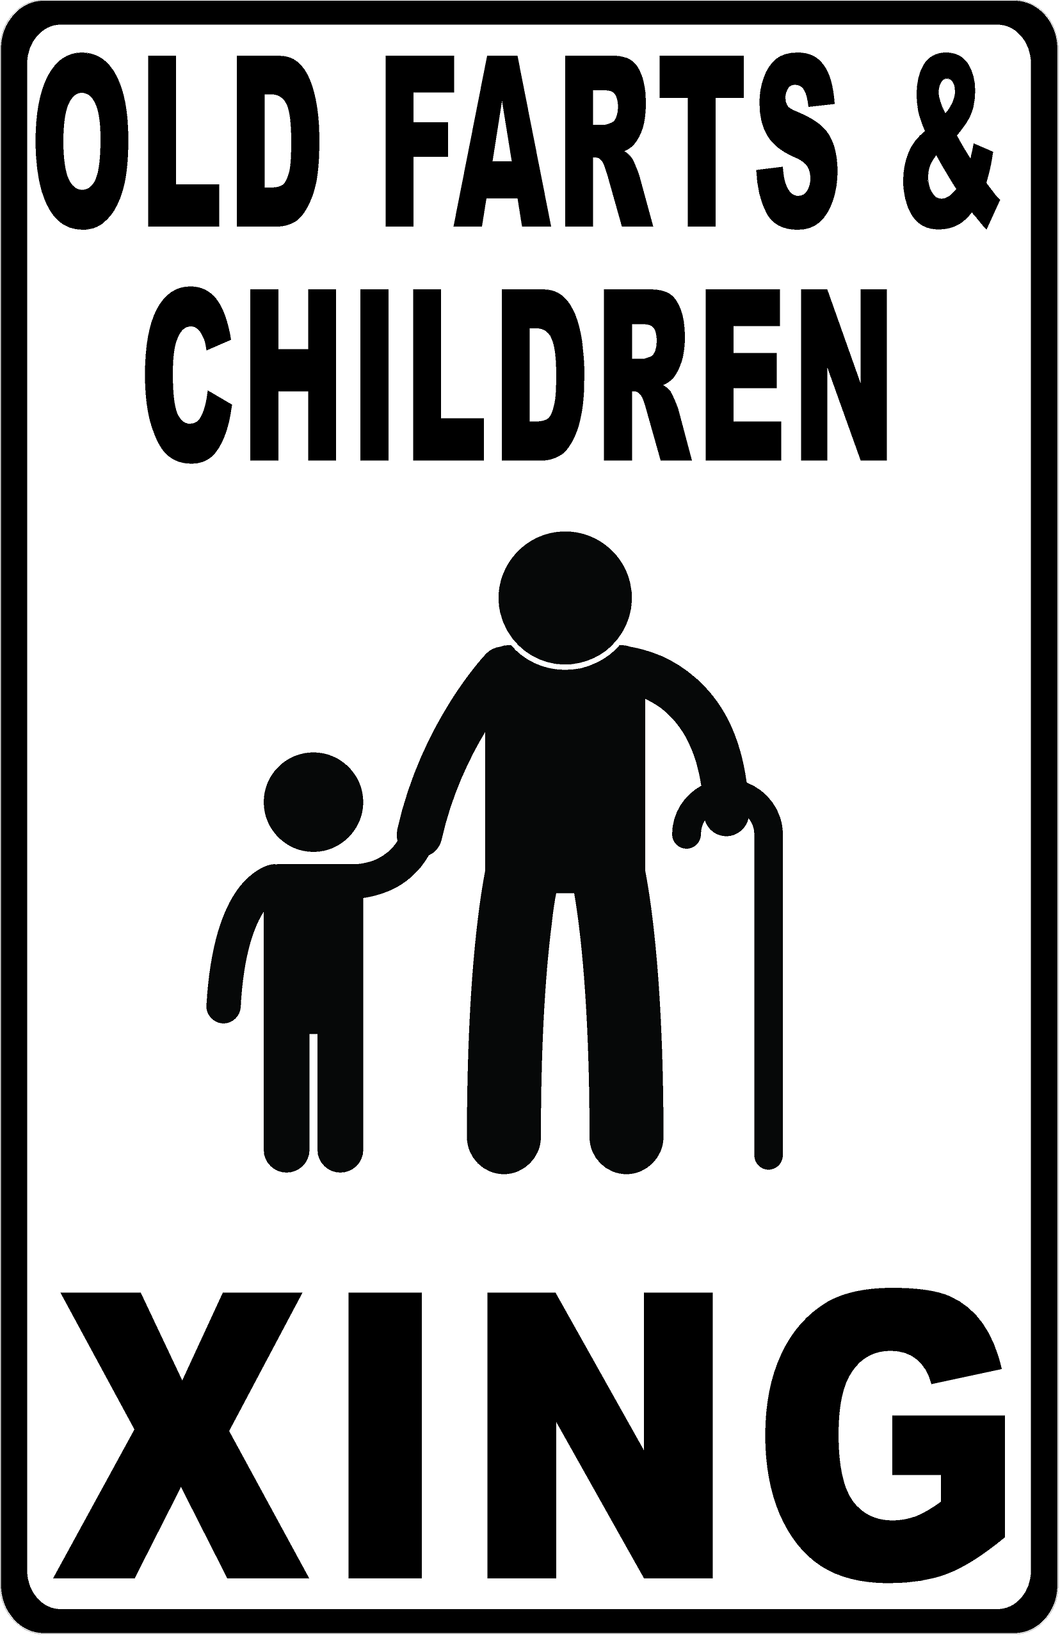 Old Fart & Children Xing Crossing Sign